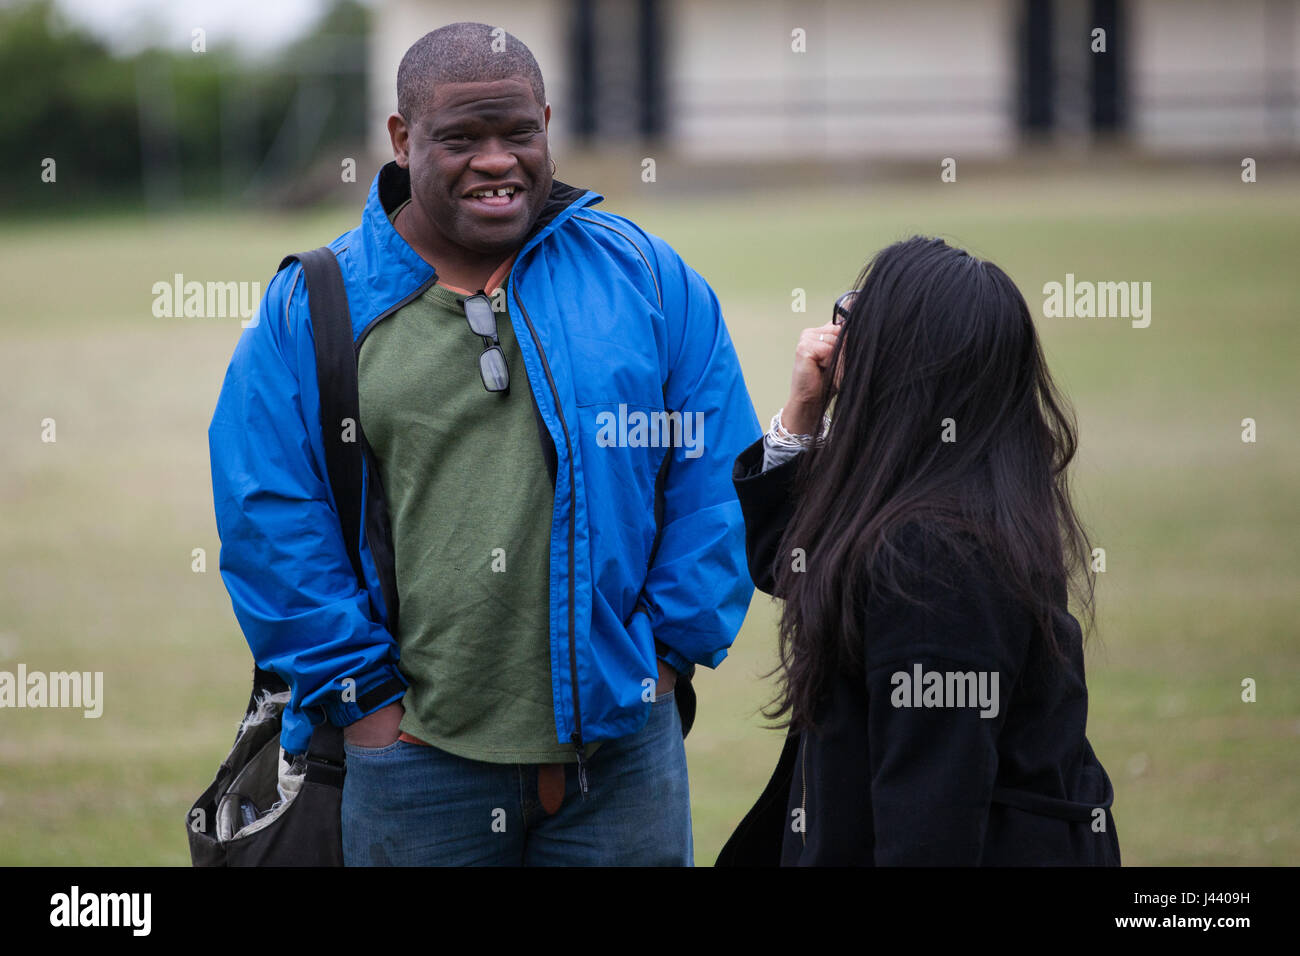 London, UK. 9th May, 2017. Gary Younge, journalist, author and broadcaster, works on a story in South Harrow during - Stock Image